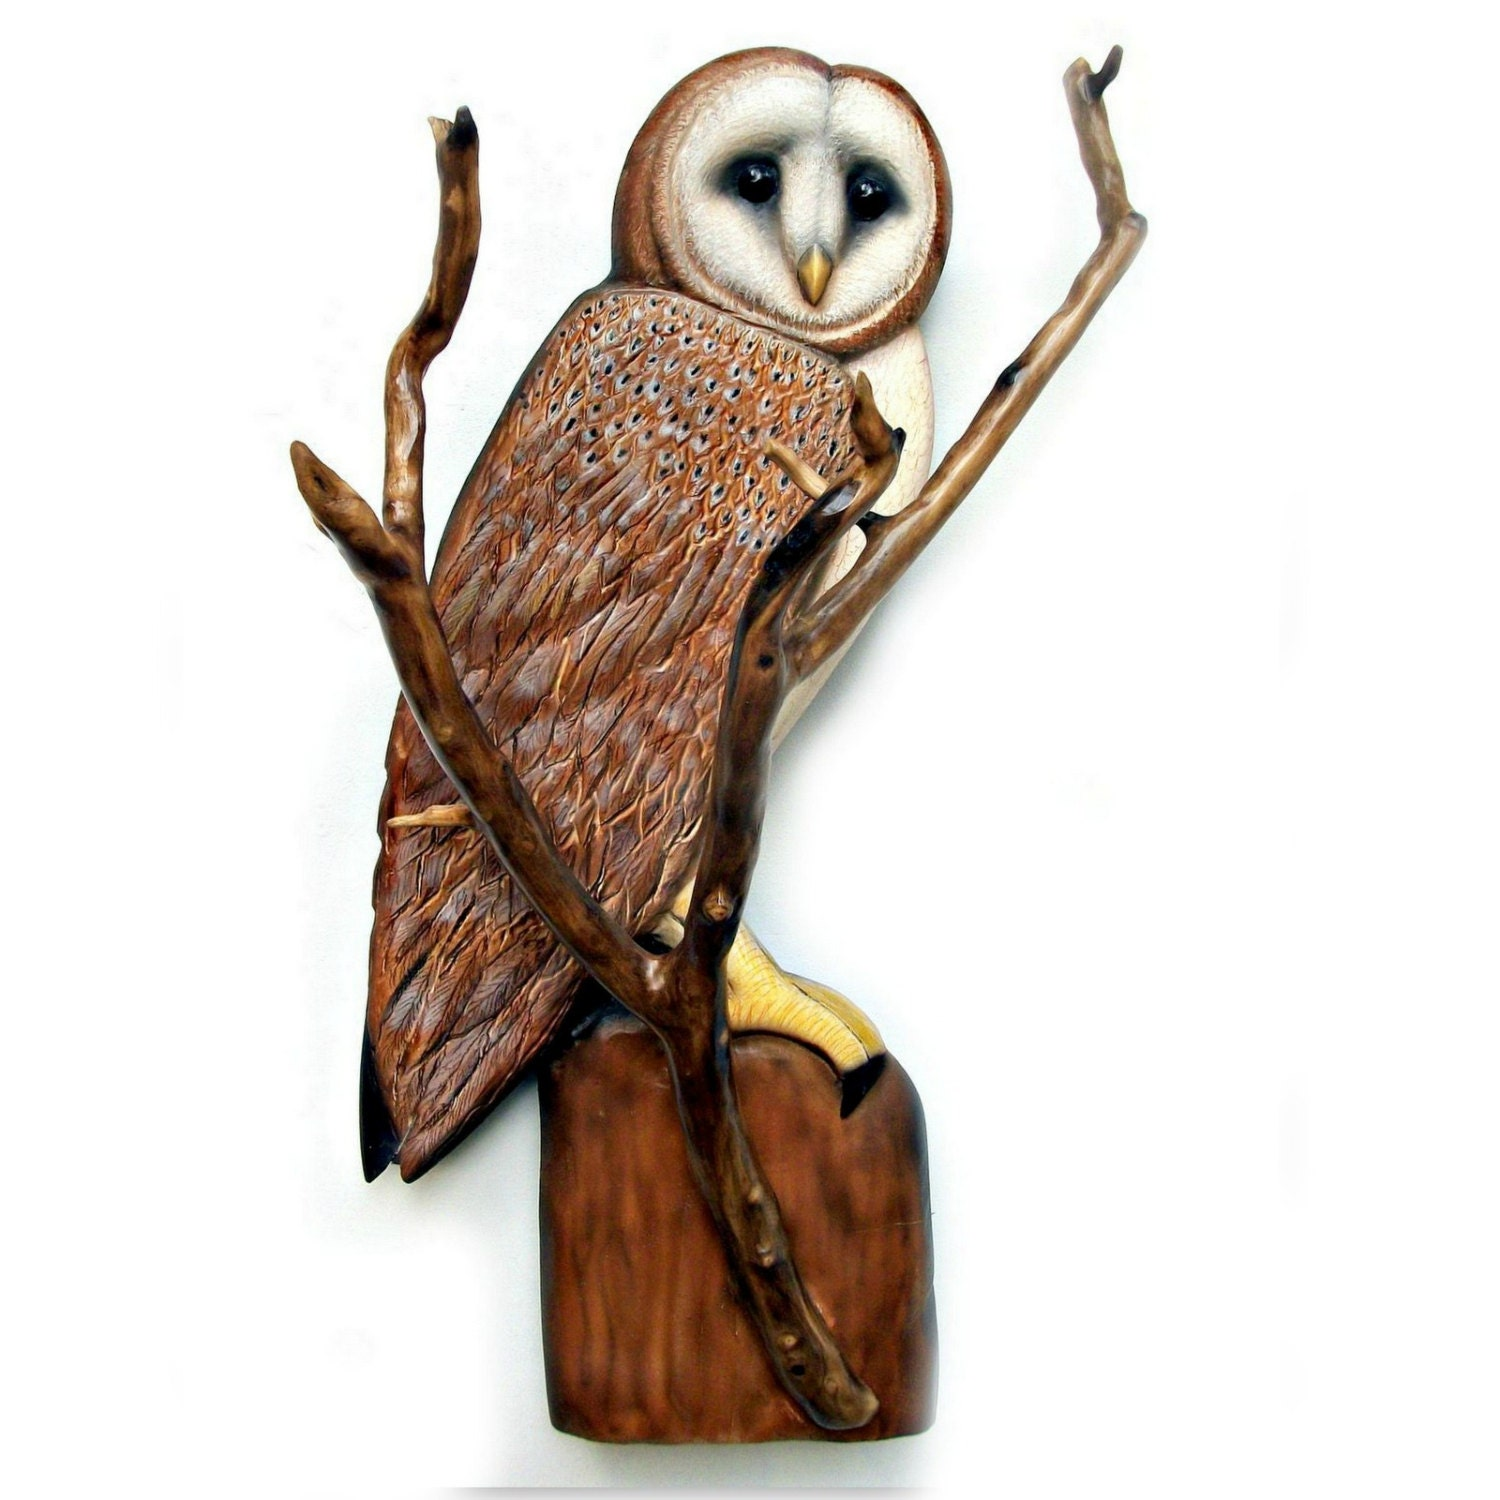 BARN OWL art sculpture, Owl art, Owl wood carving, owl sculpture, wood owl  art, owl wall art, wood owl